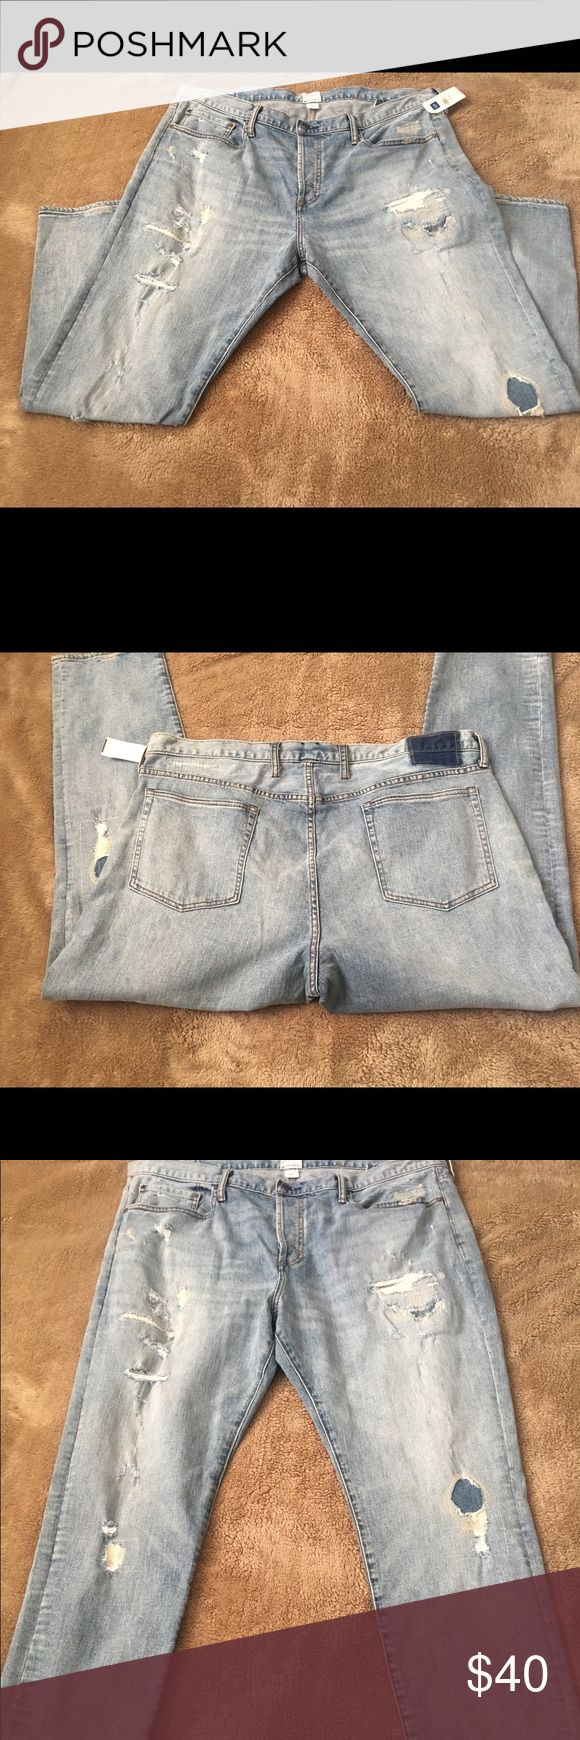 Gap MENS DESIGNER JEAN Michael Bastian made by GAP Brand new GAP Jeans Straight